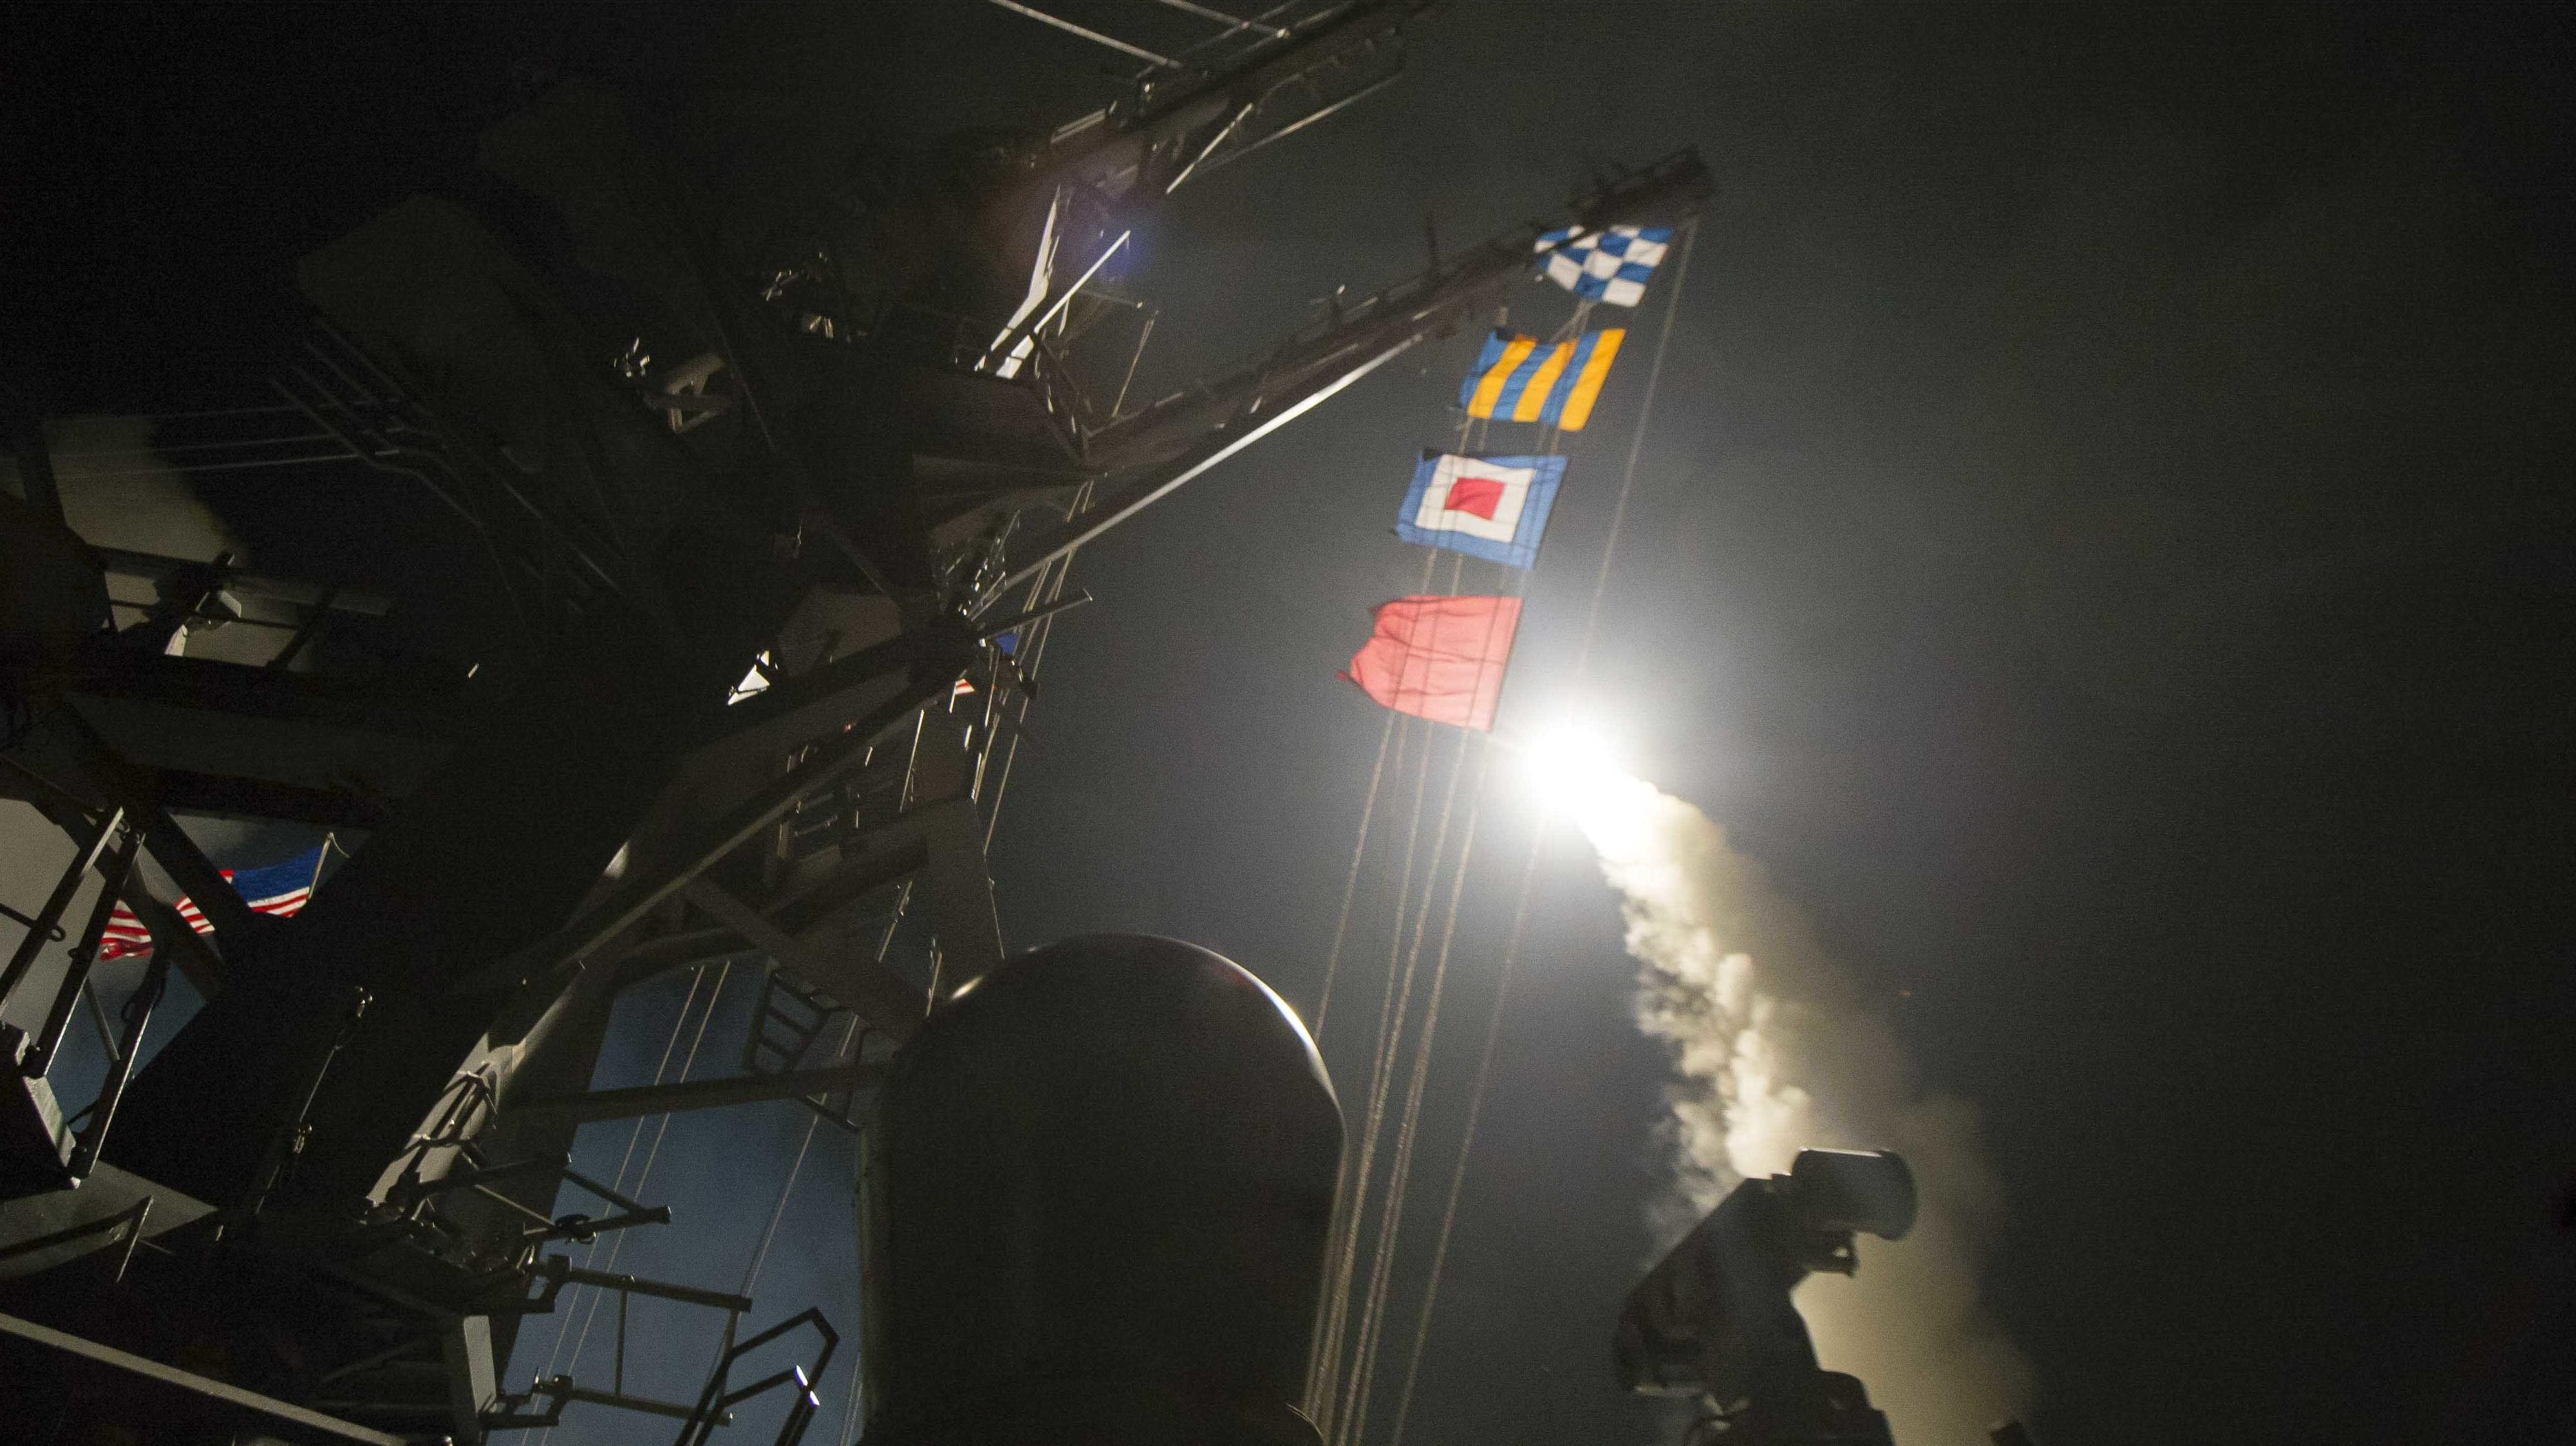 In this image provided by the U.S. Navy, the USS Ross (DDG 71) fires a tomahawk land attack missile Friday, April 7, 2017, from the Mediterranean Sea. The United States blasted a Syrian air base with a barrage of cruise missiles in fiery retaliation for this week's gruesome chemical weapons attack against civilians.